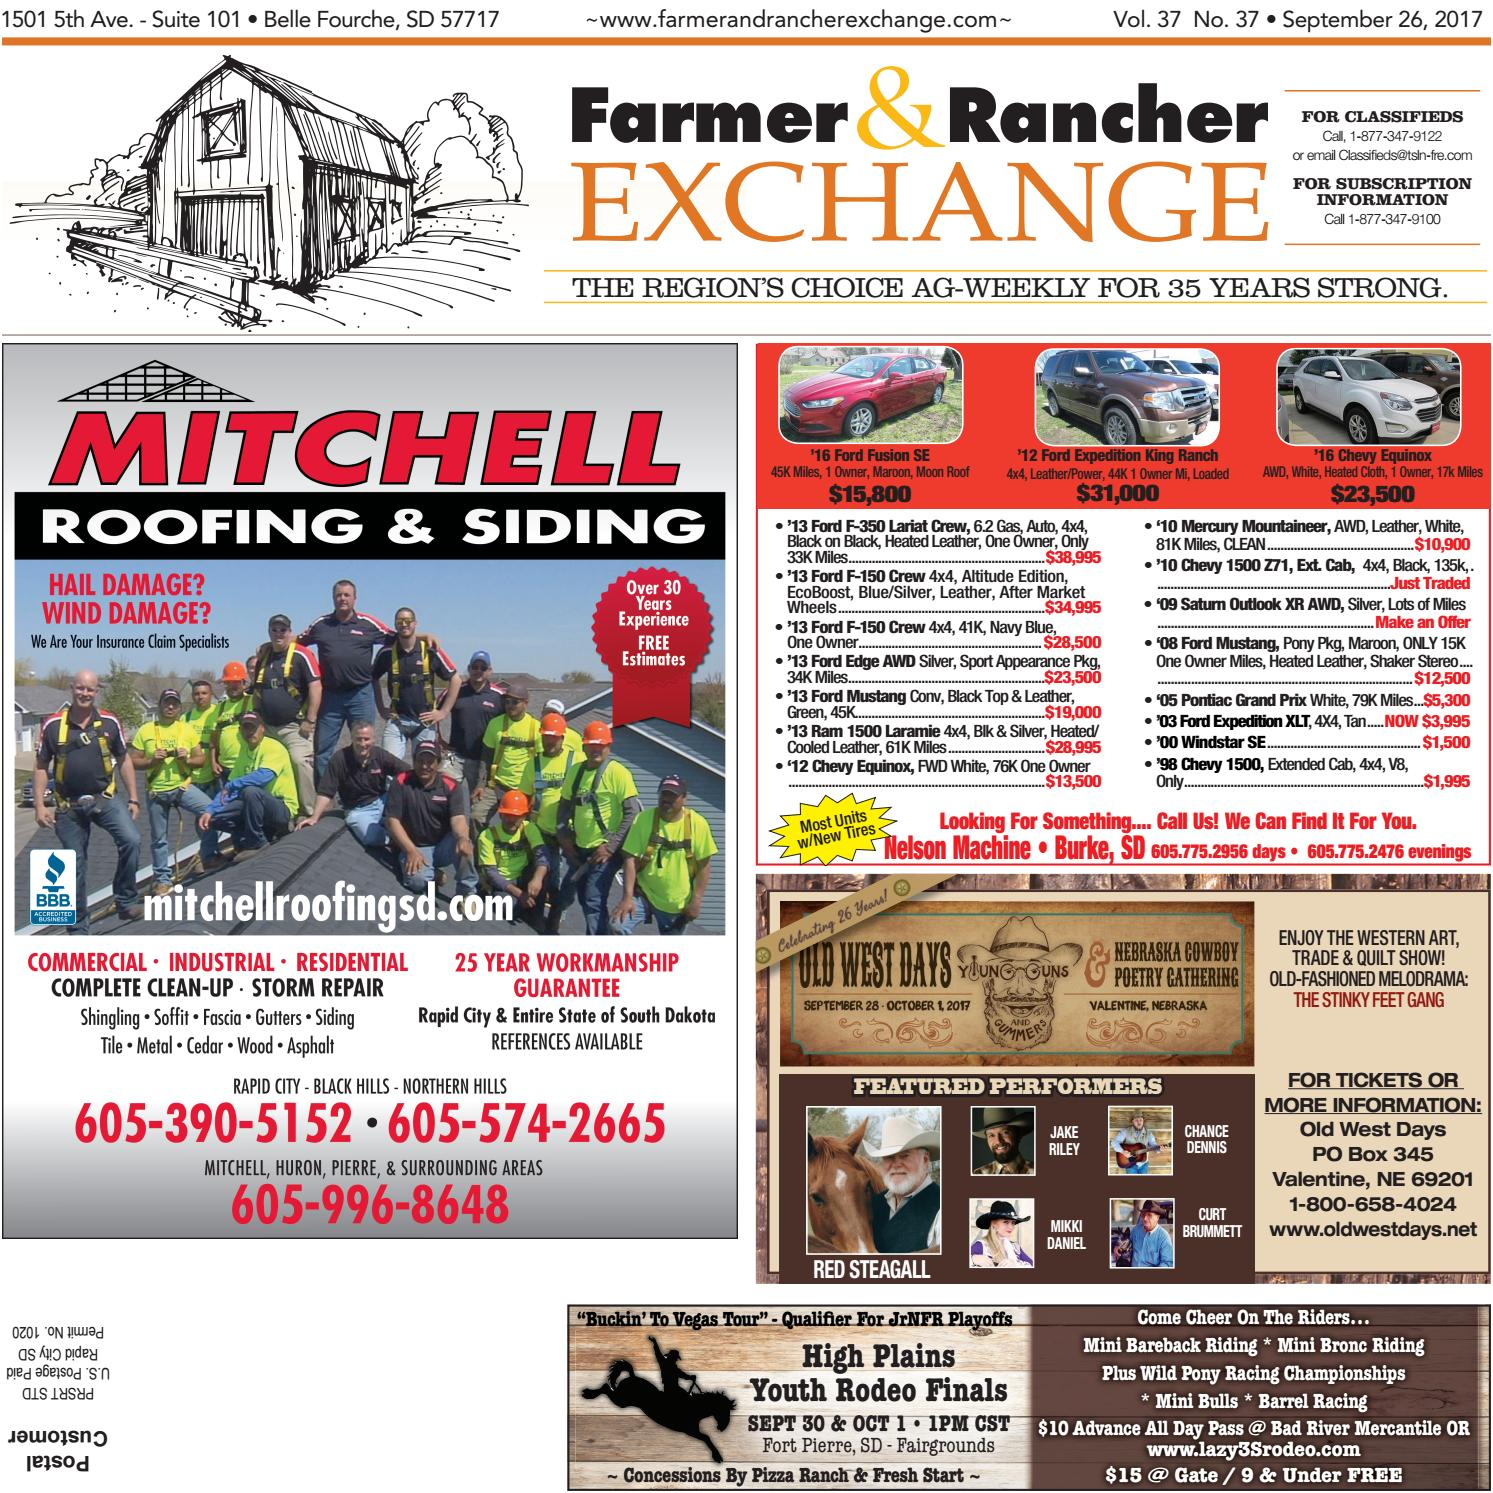 Fre 09 26 17 by Tri-State Livestock News - Farmer & Rancher